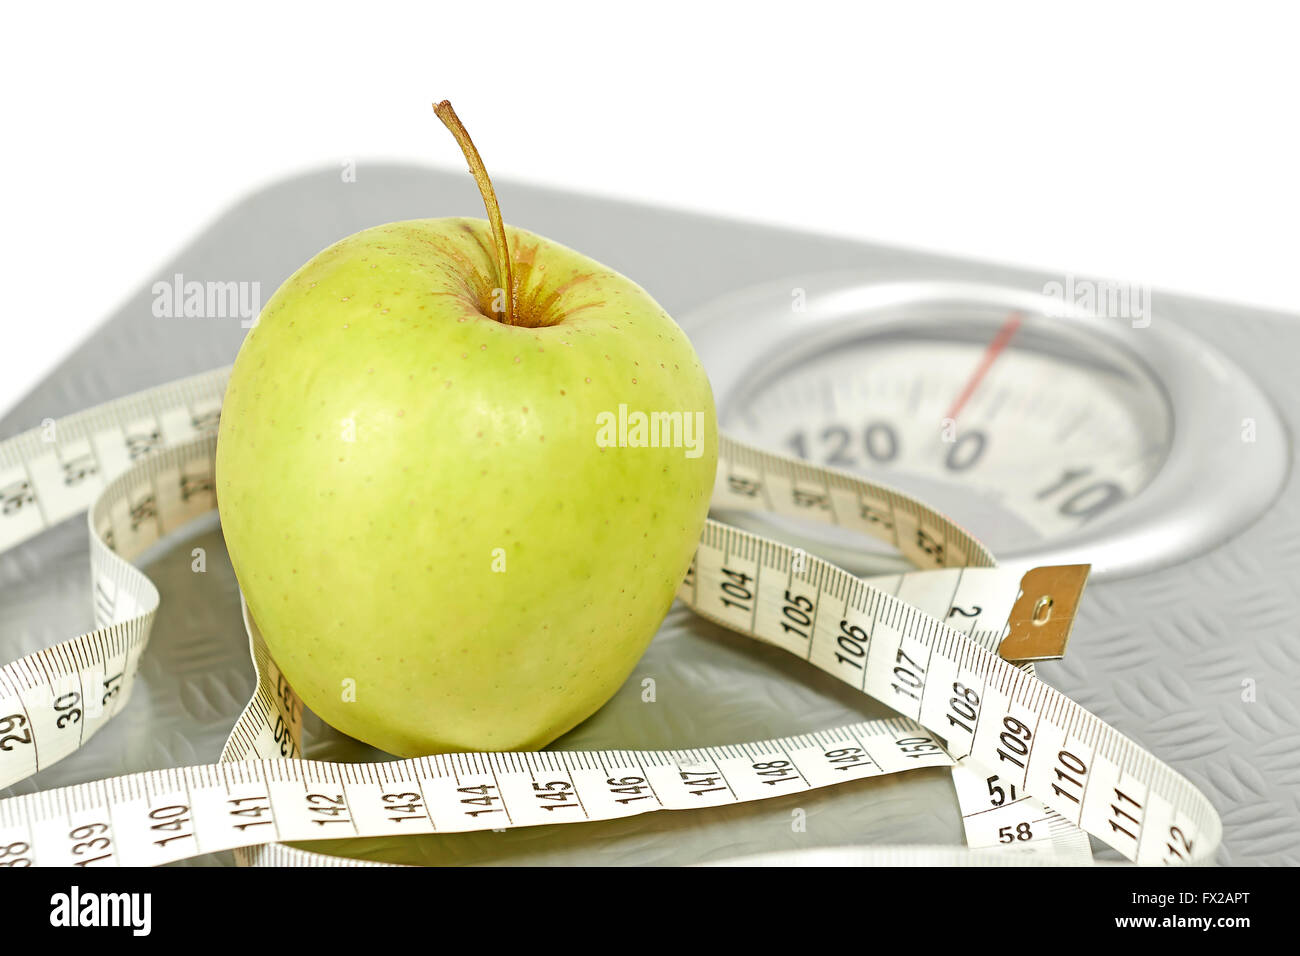 An apple, messure tape and a weight scale Illustrating a healthy lifestyle - Stock Image